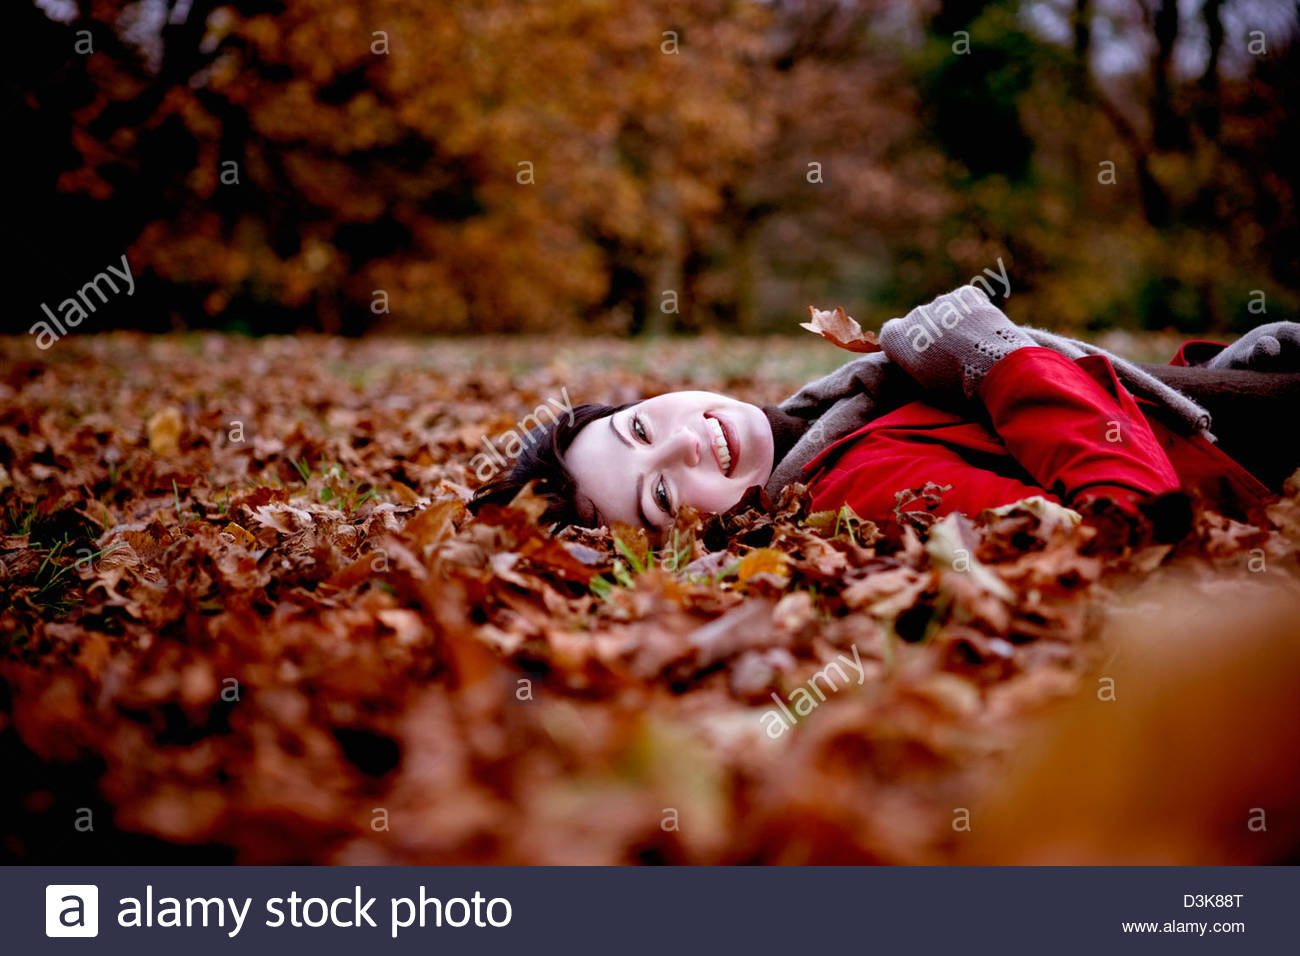 A woman lying on the ground hold an autumn leaf - Stock Image